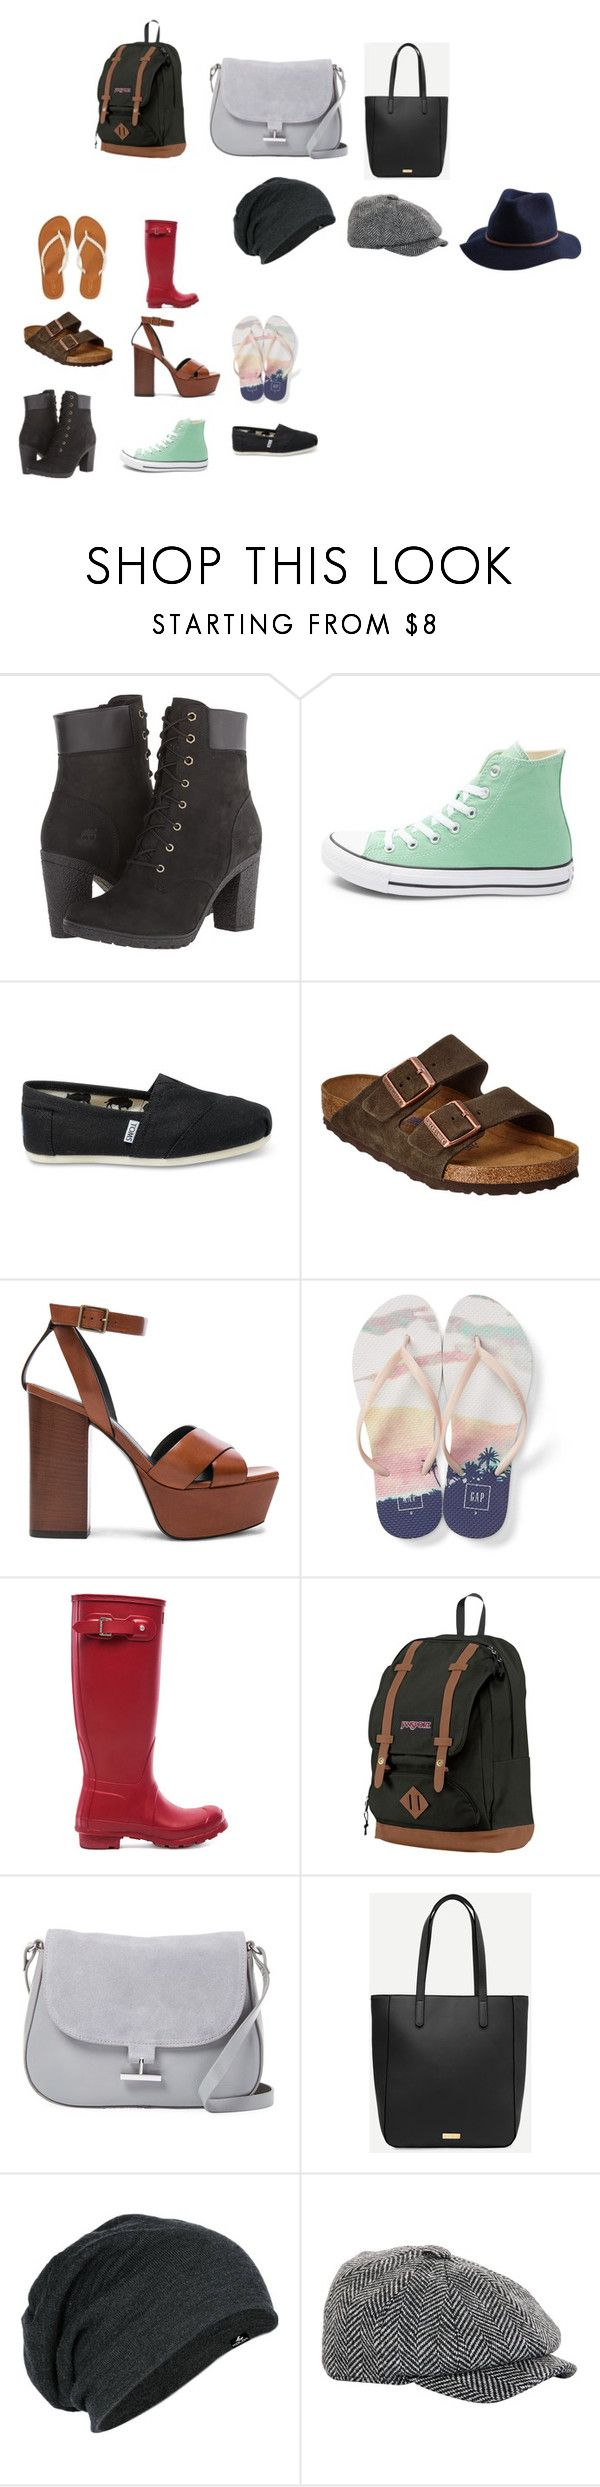 """""""Head to Toe"""" by writerchic1111 on Polyvore featuring Timberland, Converse, TOMS, Birkenstock, Yves Saint Laurent, Gap, Aéropostale, Hunter, JanSport and Halston Heritage"""